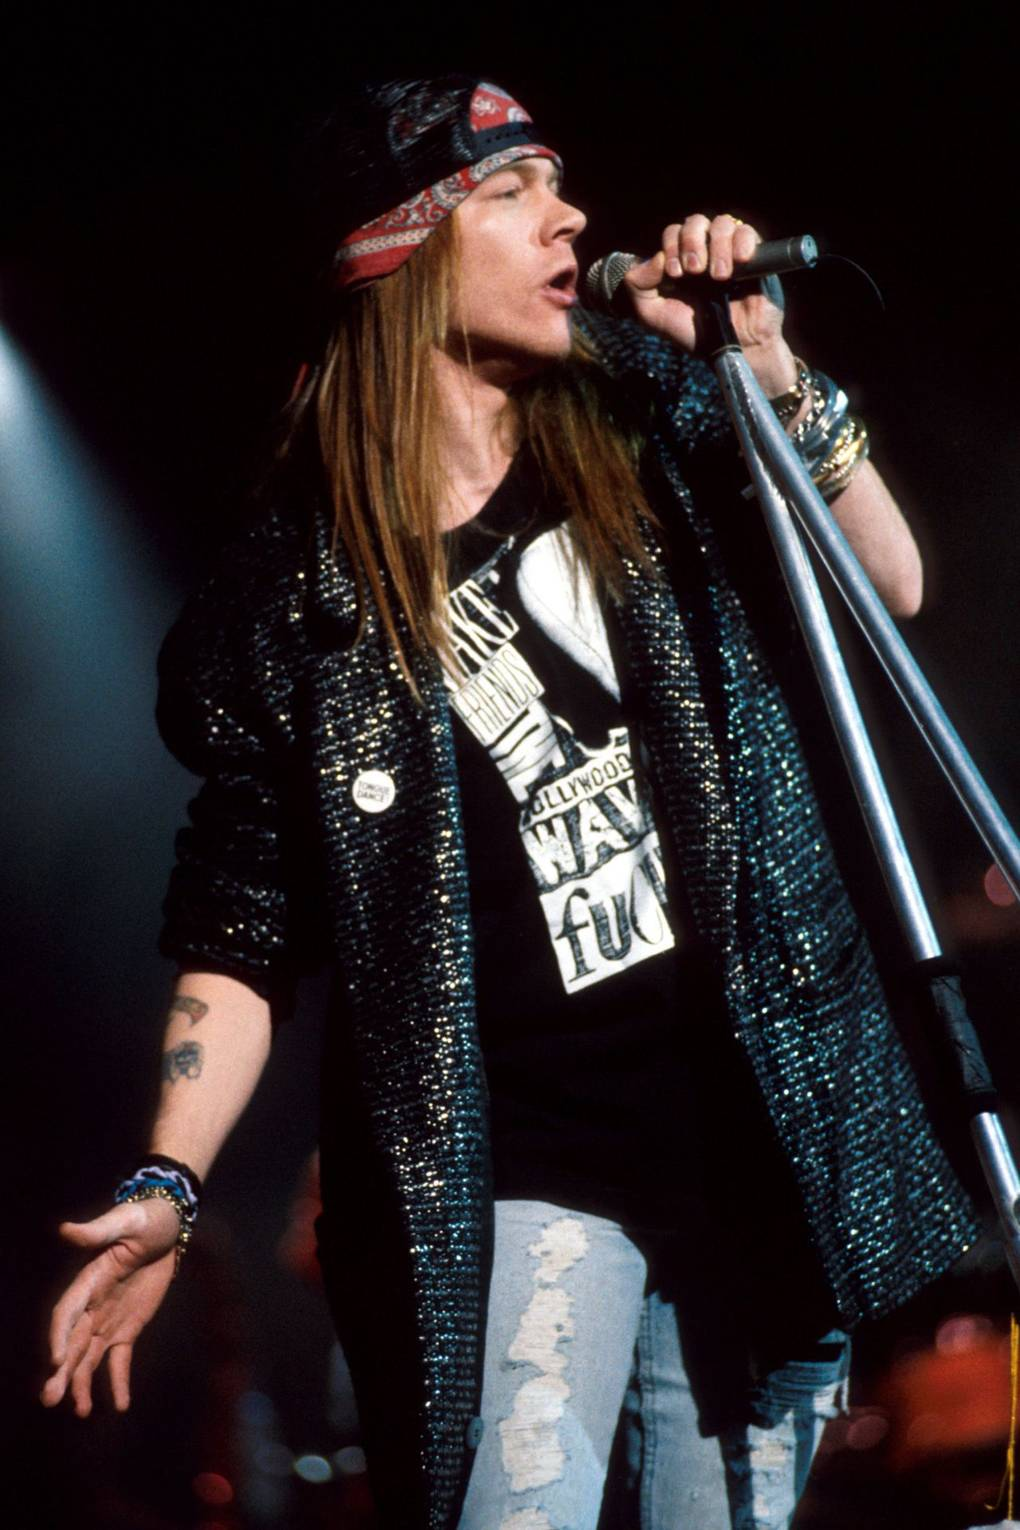 Efemérides - Página 2 10-Axl-Rose-GQ-13Dec16_getty_b